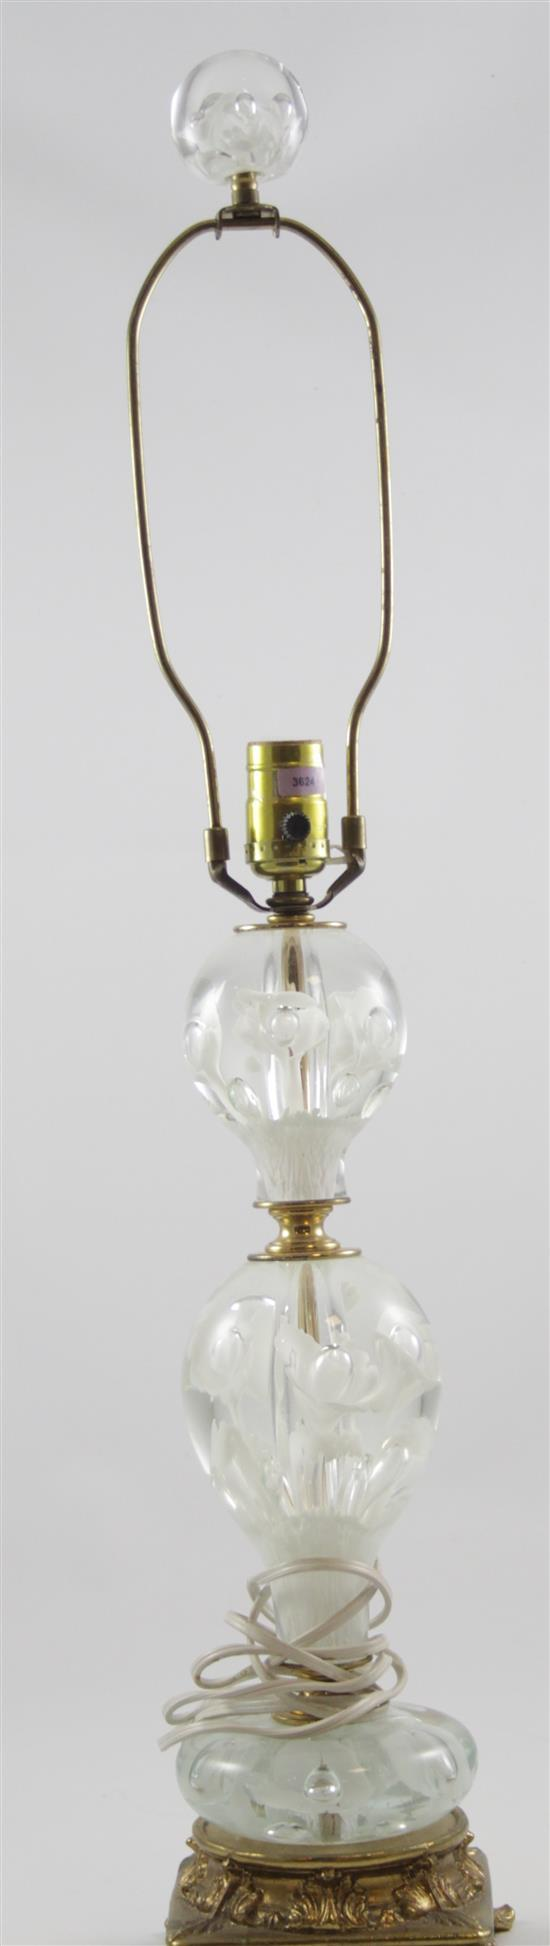 UNMARKED GLASS TABLE LAMP WITH WHITE TRUMPET FLOWERS AND BRASS BASE, 31.5